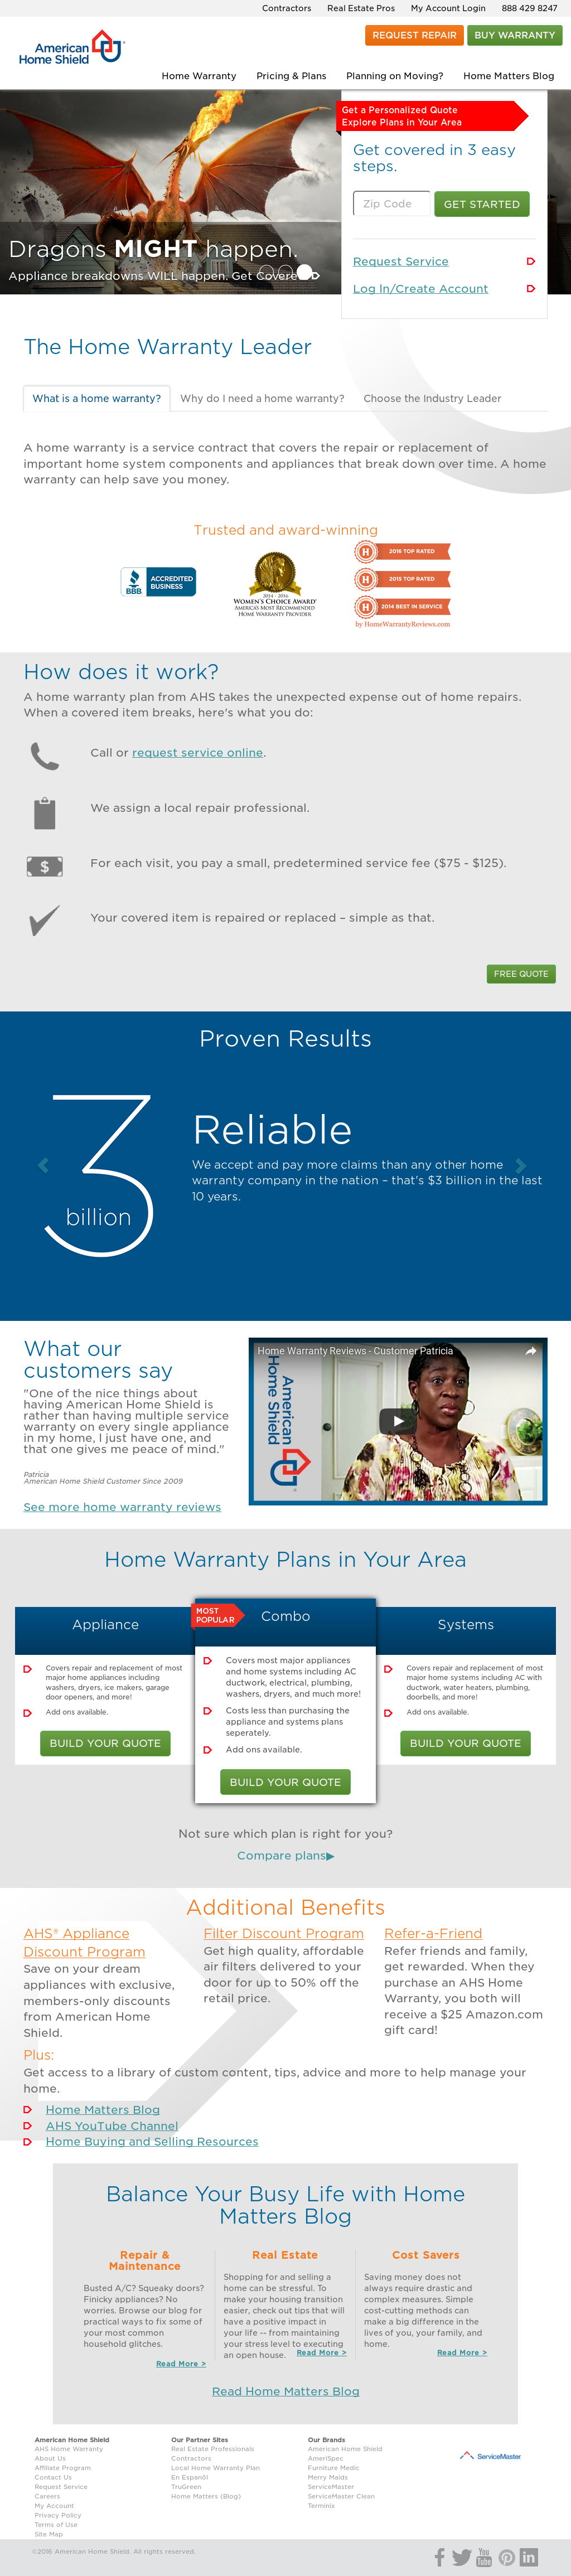 Choice Home Warranty Vendor Login >> Ahs Competitors Revenue And Employees Owler Company Profile